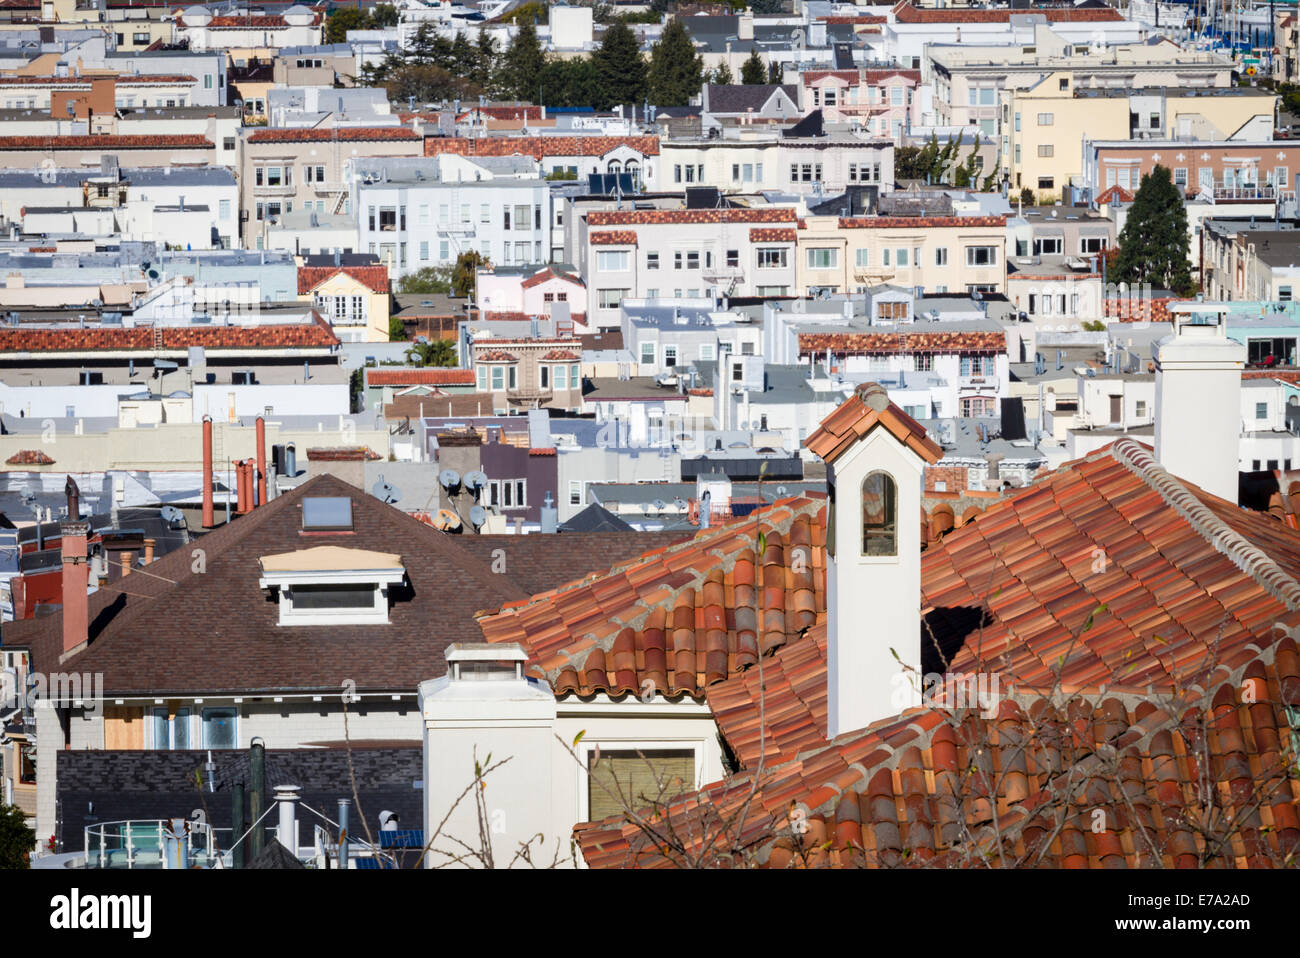 Houses with Spanish tile roofs on hillside in Marina district of San Francisco, California - Stock Image